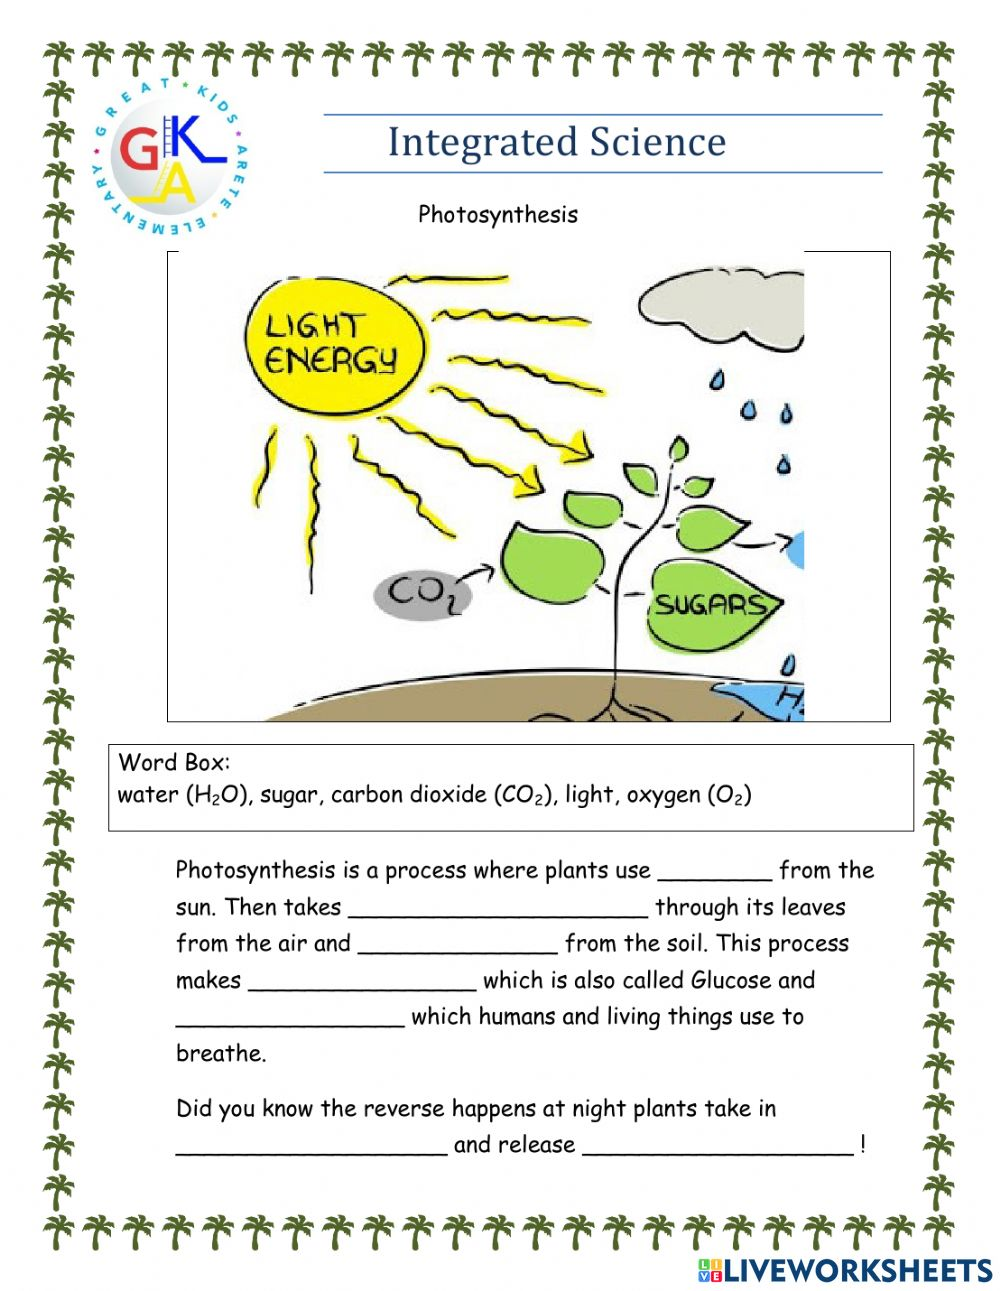 hight resolution of Photosynthesis interactive exercise for Grade 1